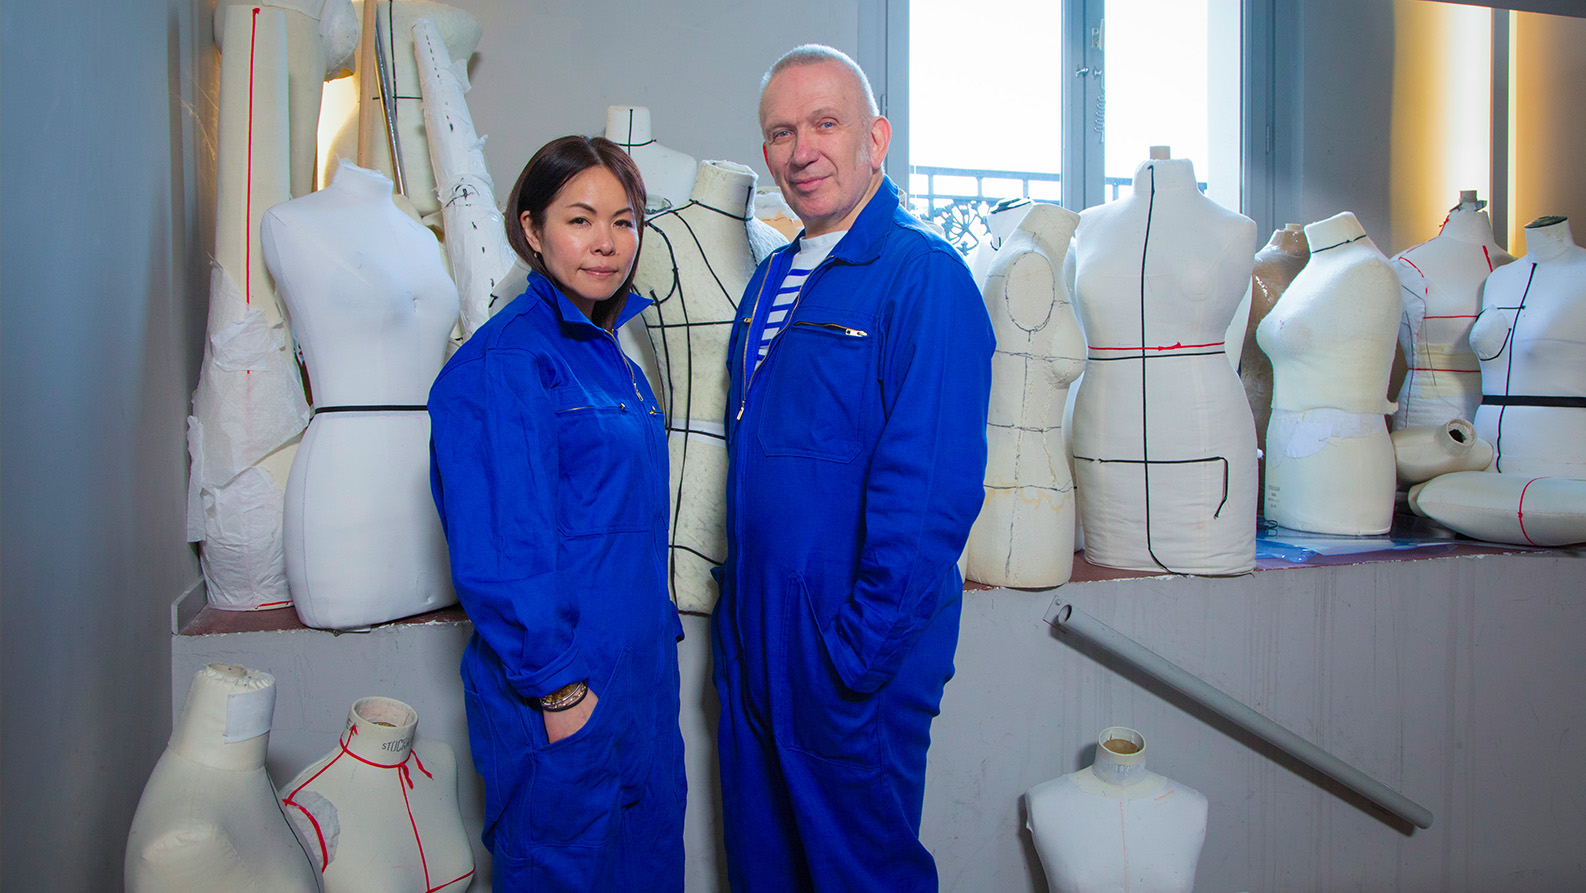 Sacai's Chitose Abe will design Jean-Paul Gaultier's next couture collection